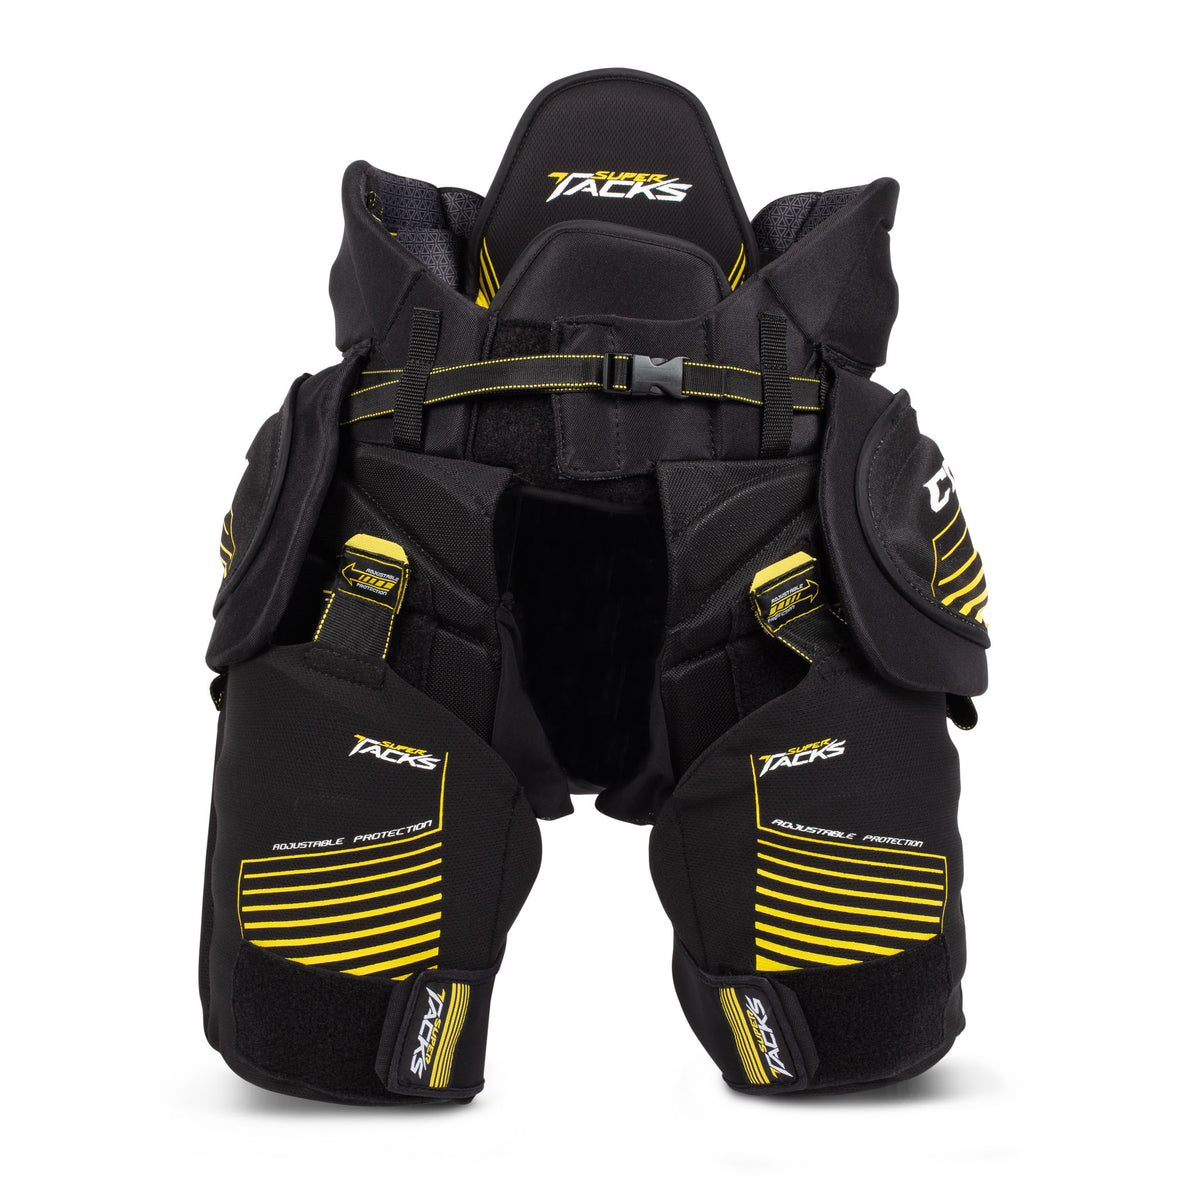 CCM Super Tacks Senior Hockey Girdle w/ Shell